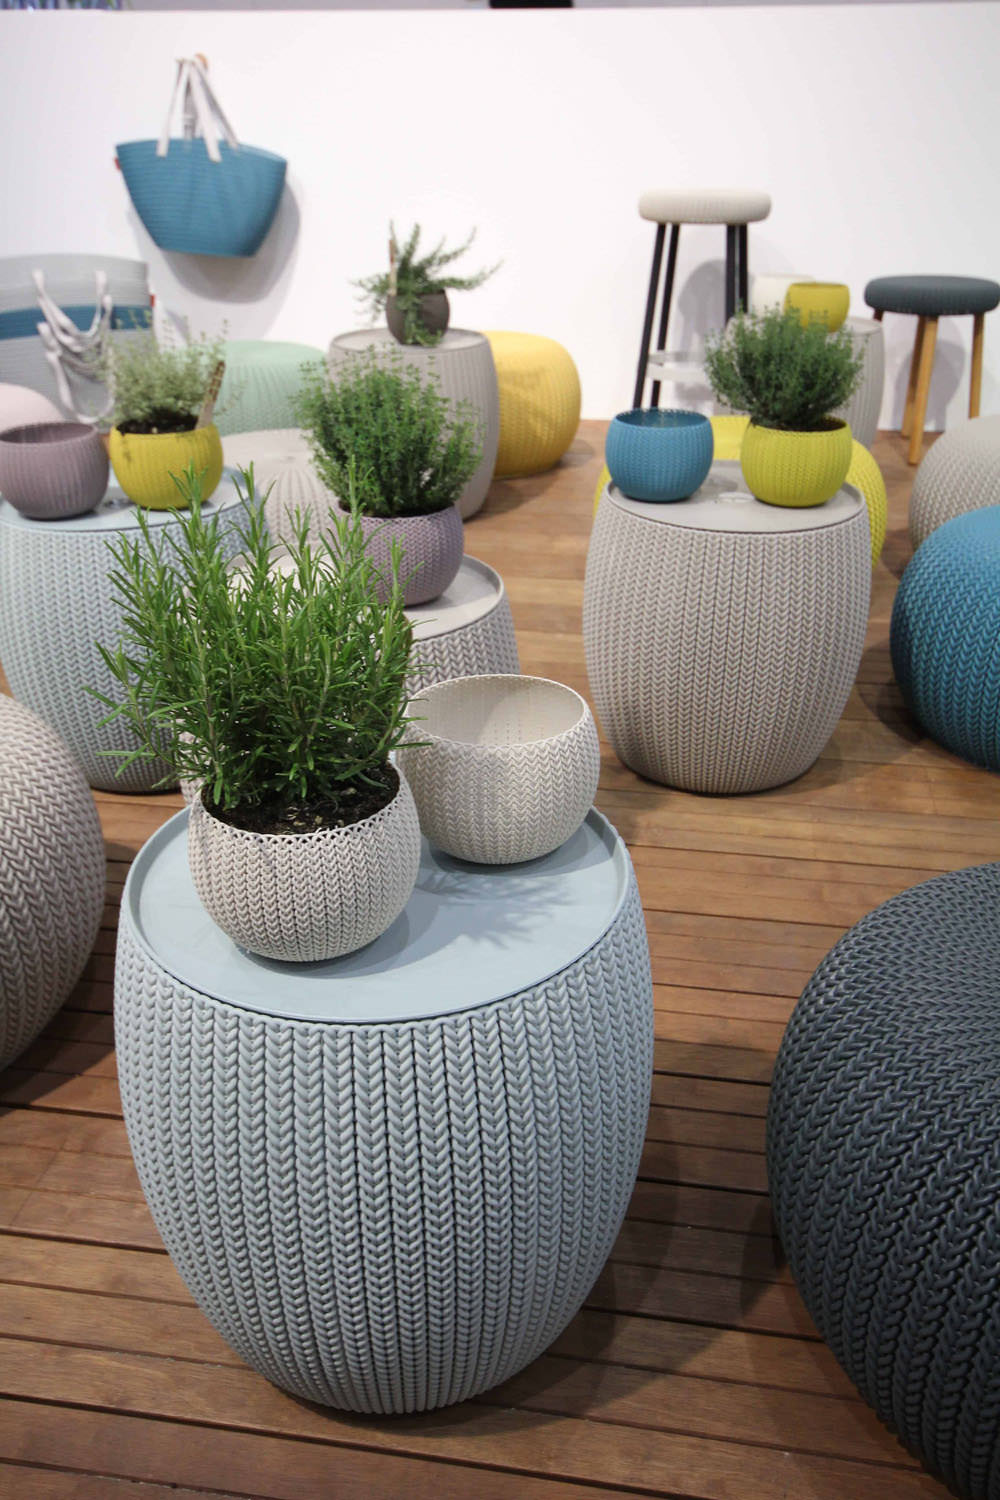 09-knit-keter-curver-house-for-interior-beursstyling